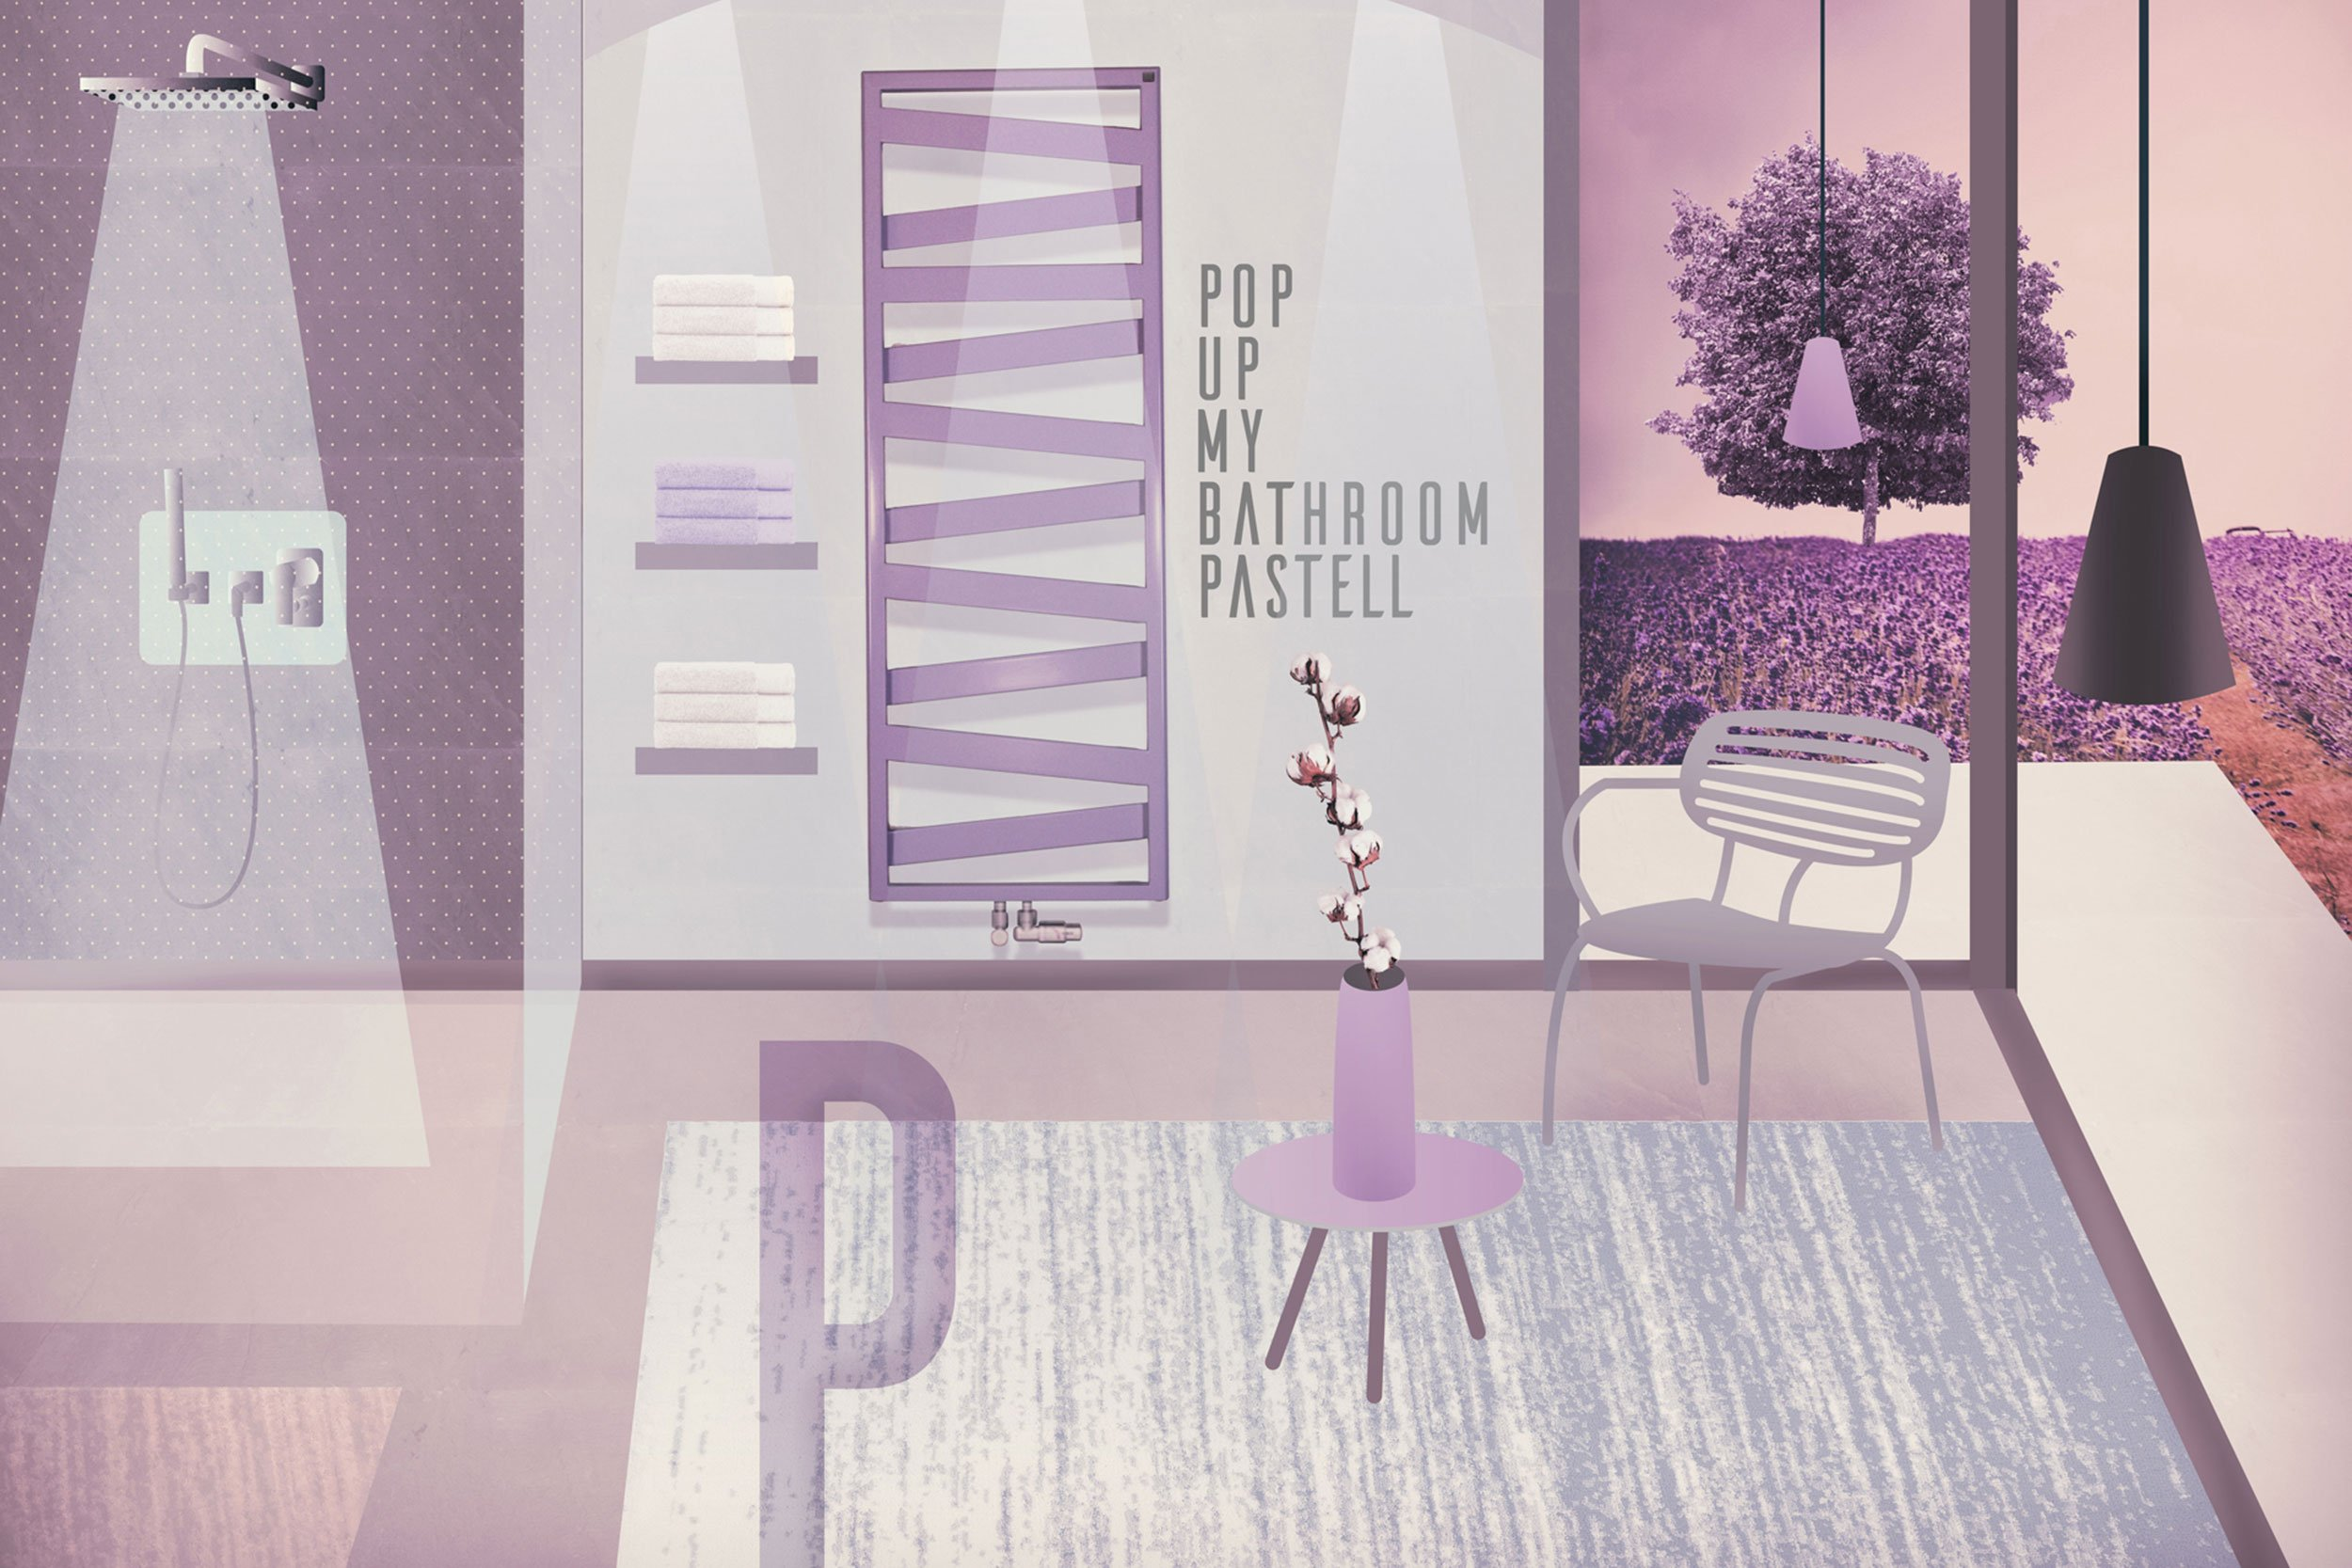 https://farconsulting.de/wp-content/uploads/2020/03/11_Pop-up-my-Bathroom-Illustrationen.jpg